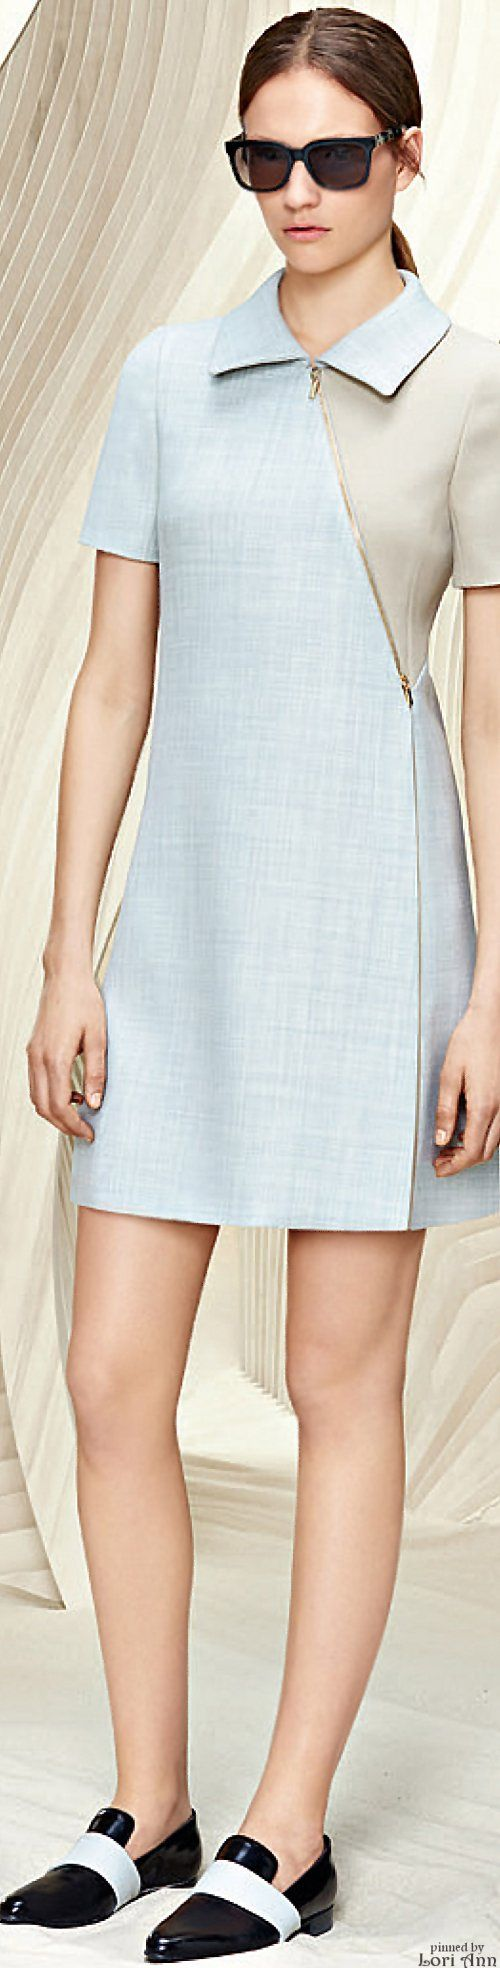 Boss ~ Resort Pale Blue Asymmetrical Dress 2016